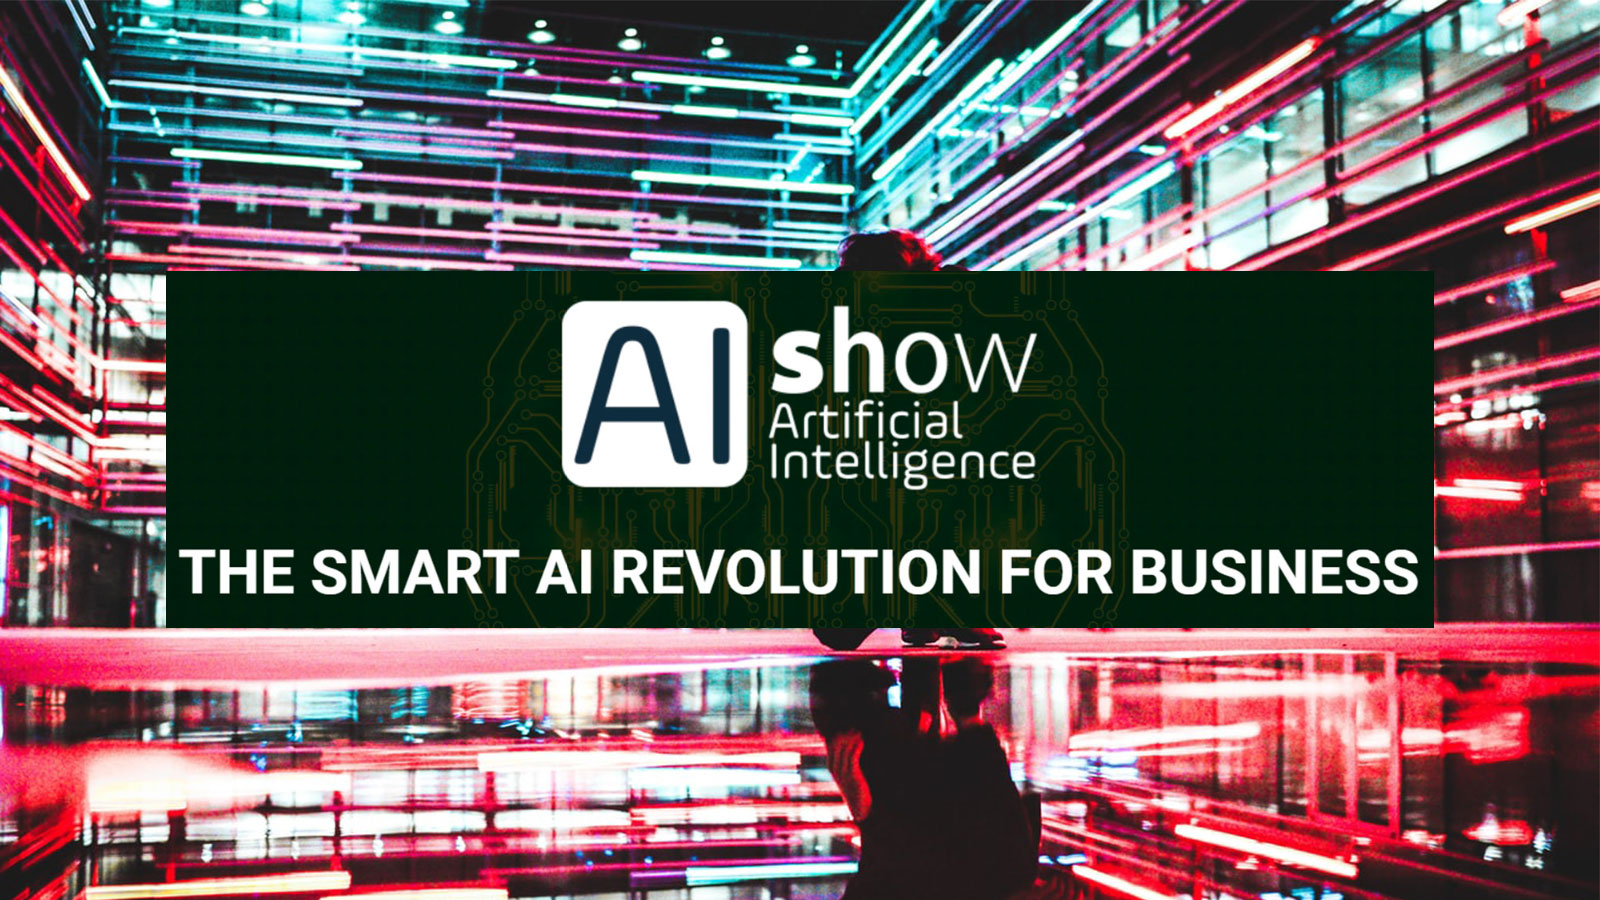 Artificial Intelligence with AIshow event banner